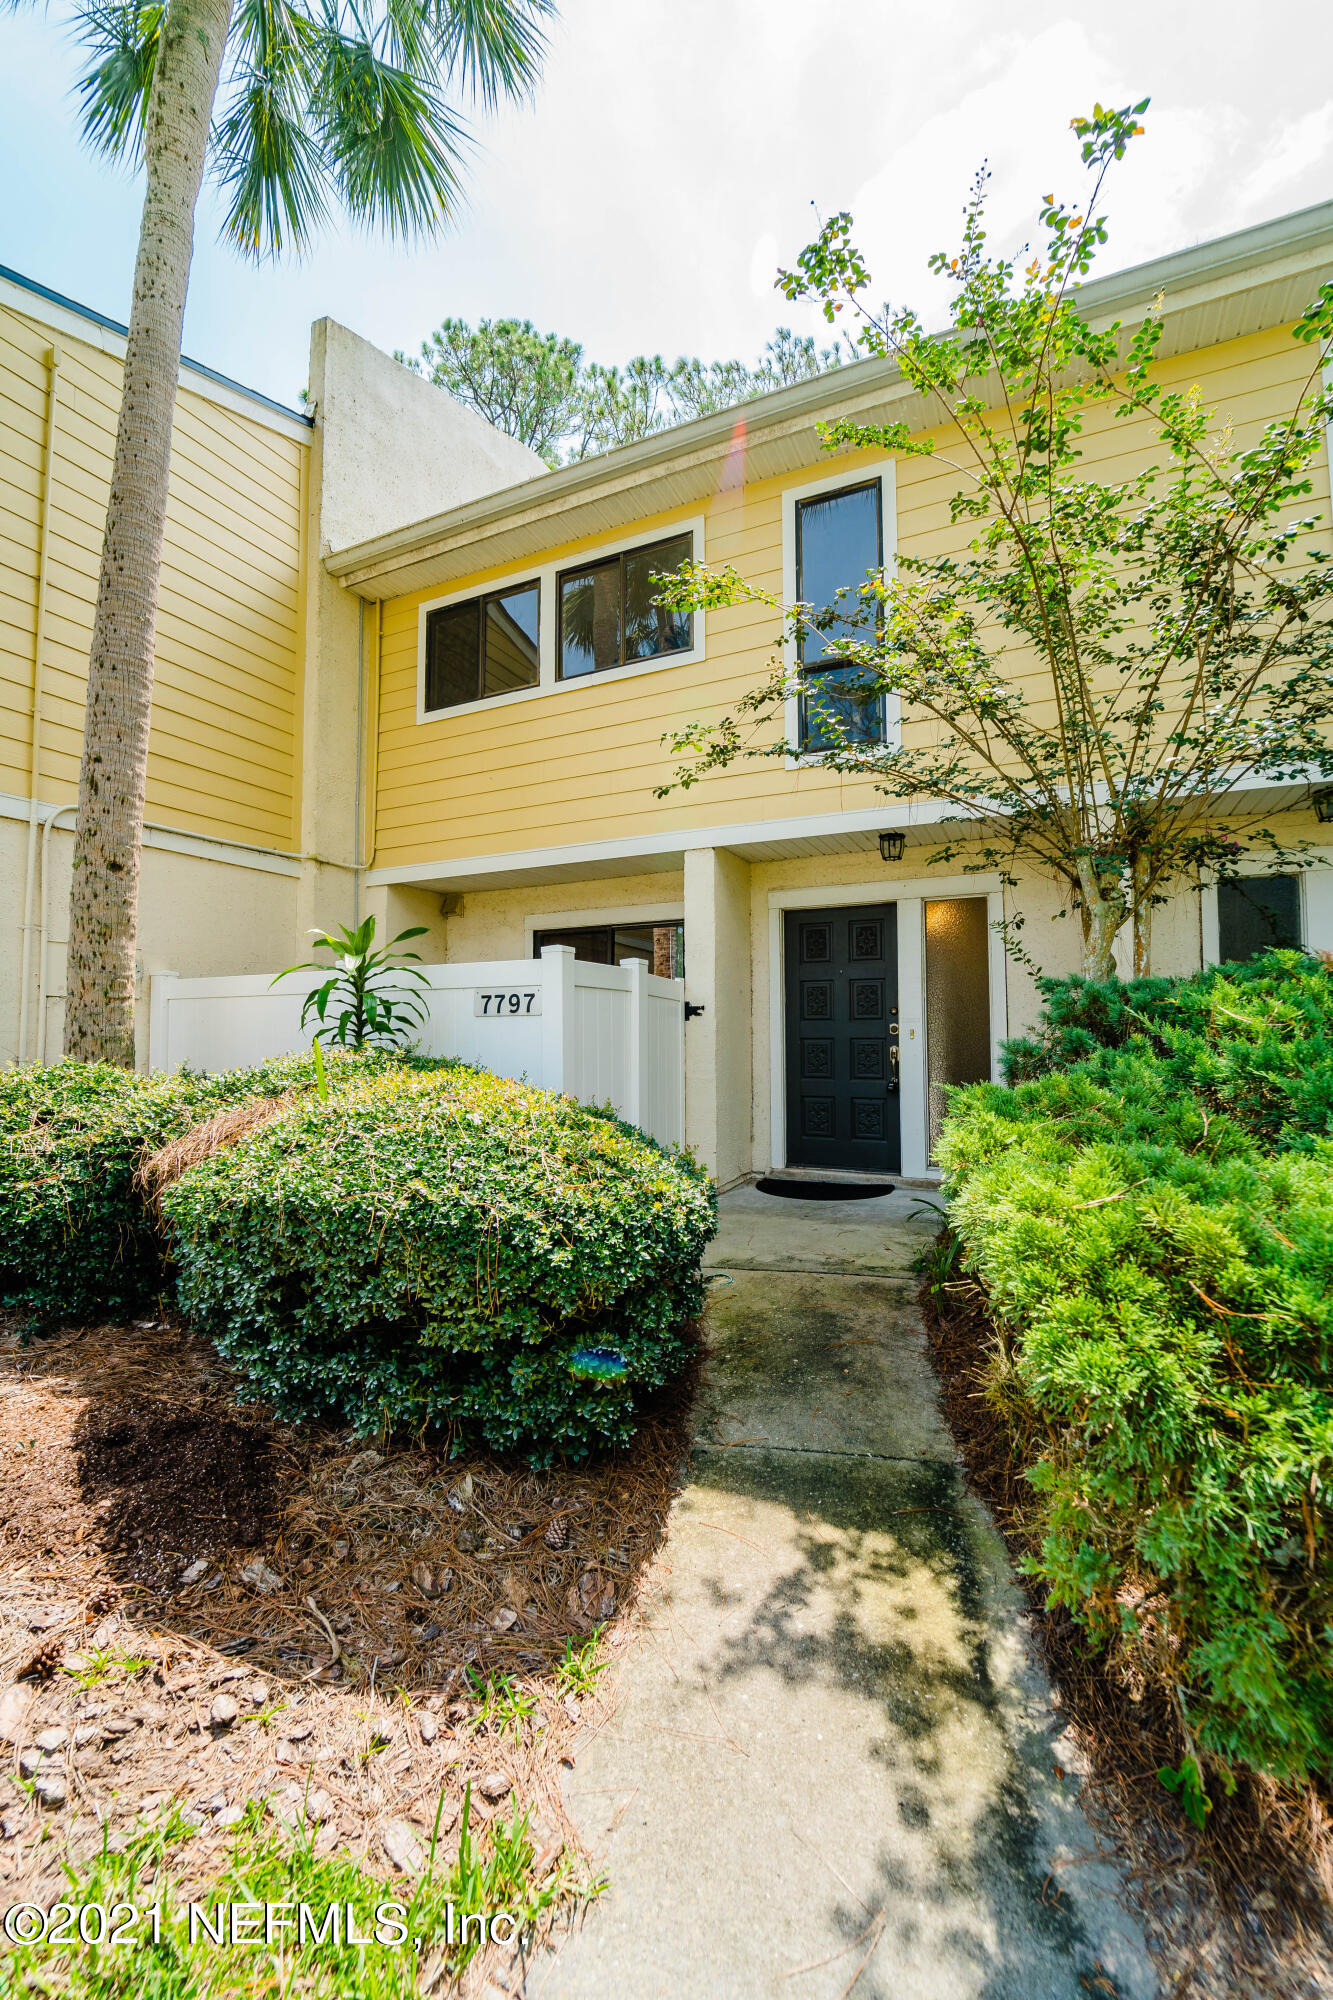 7797 POINT VICENTE, JACKSONVILLE, FLORIDA 32256, 2 Bedrooms Bedrooms, ,2 BathroomsBathrooms,Residential,For sale,POINT VICENTE,1123818